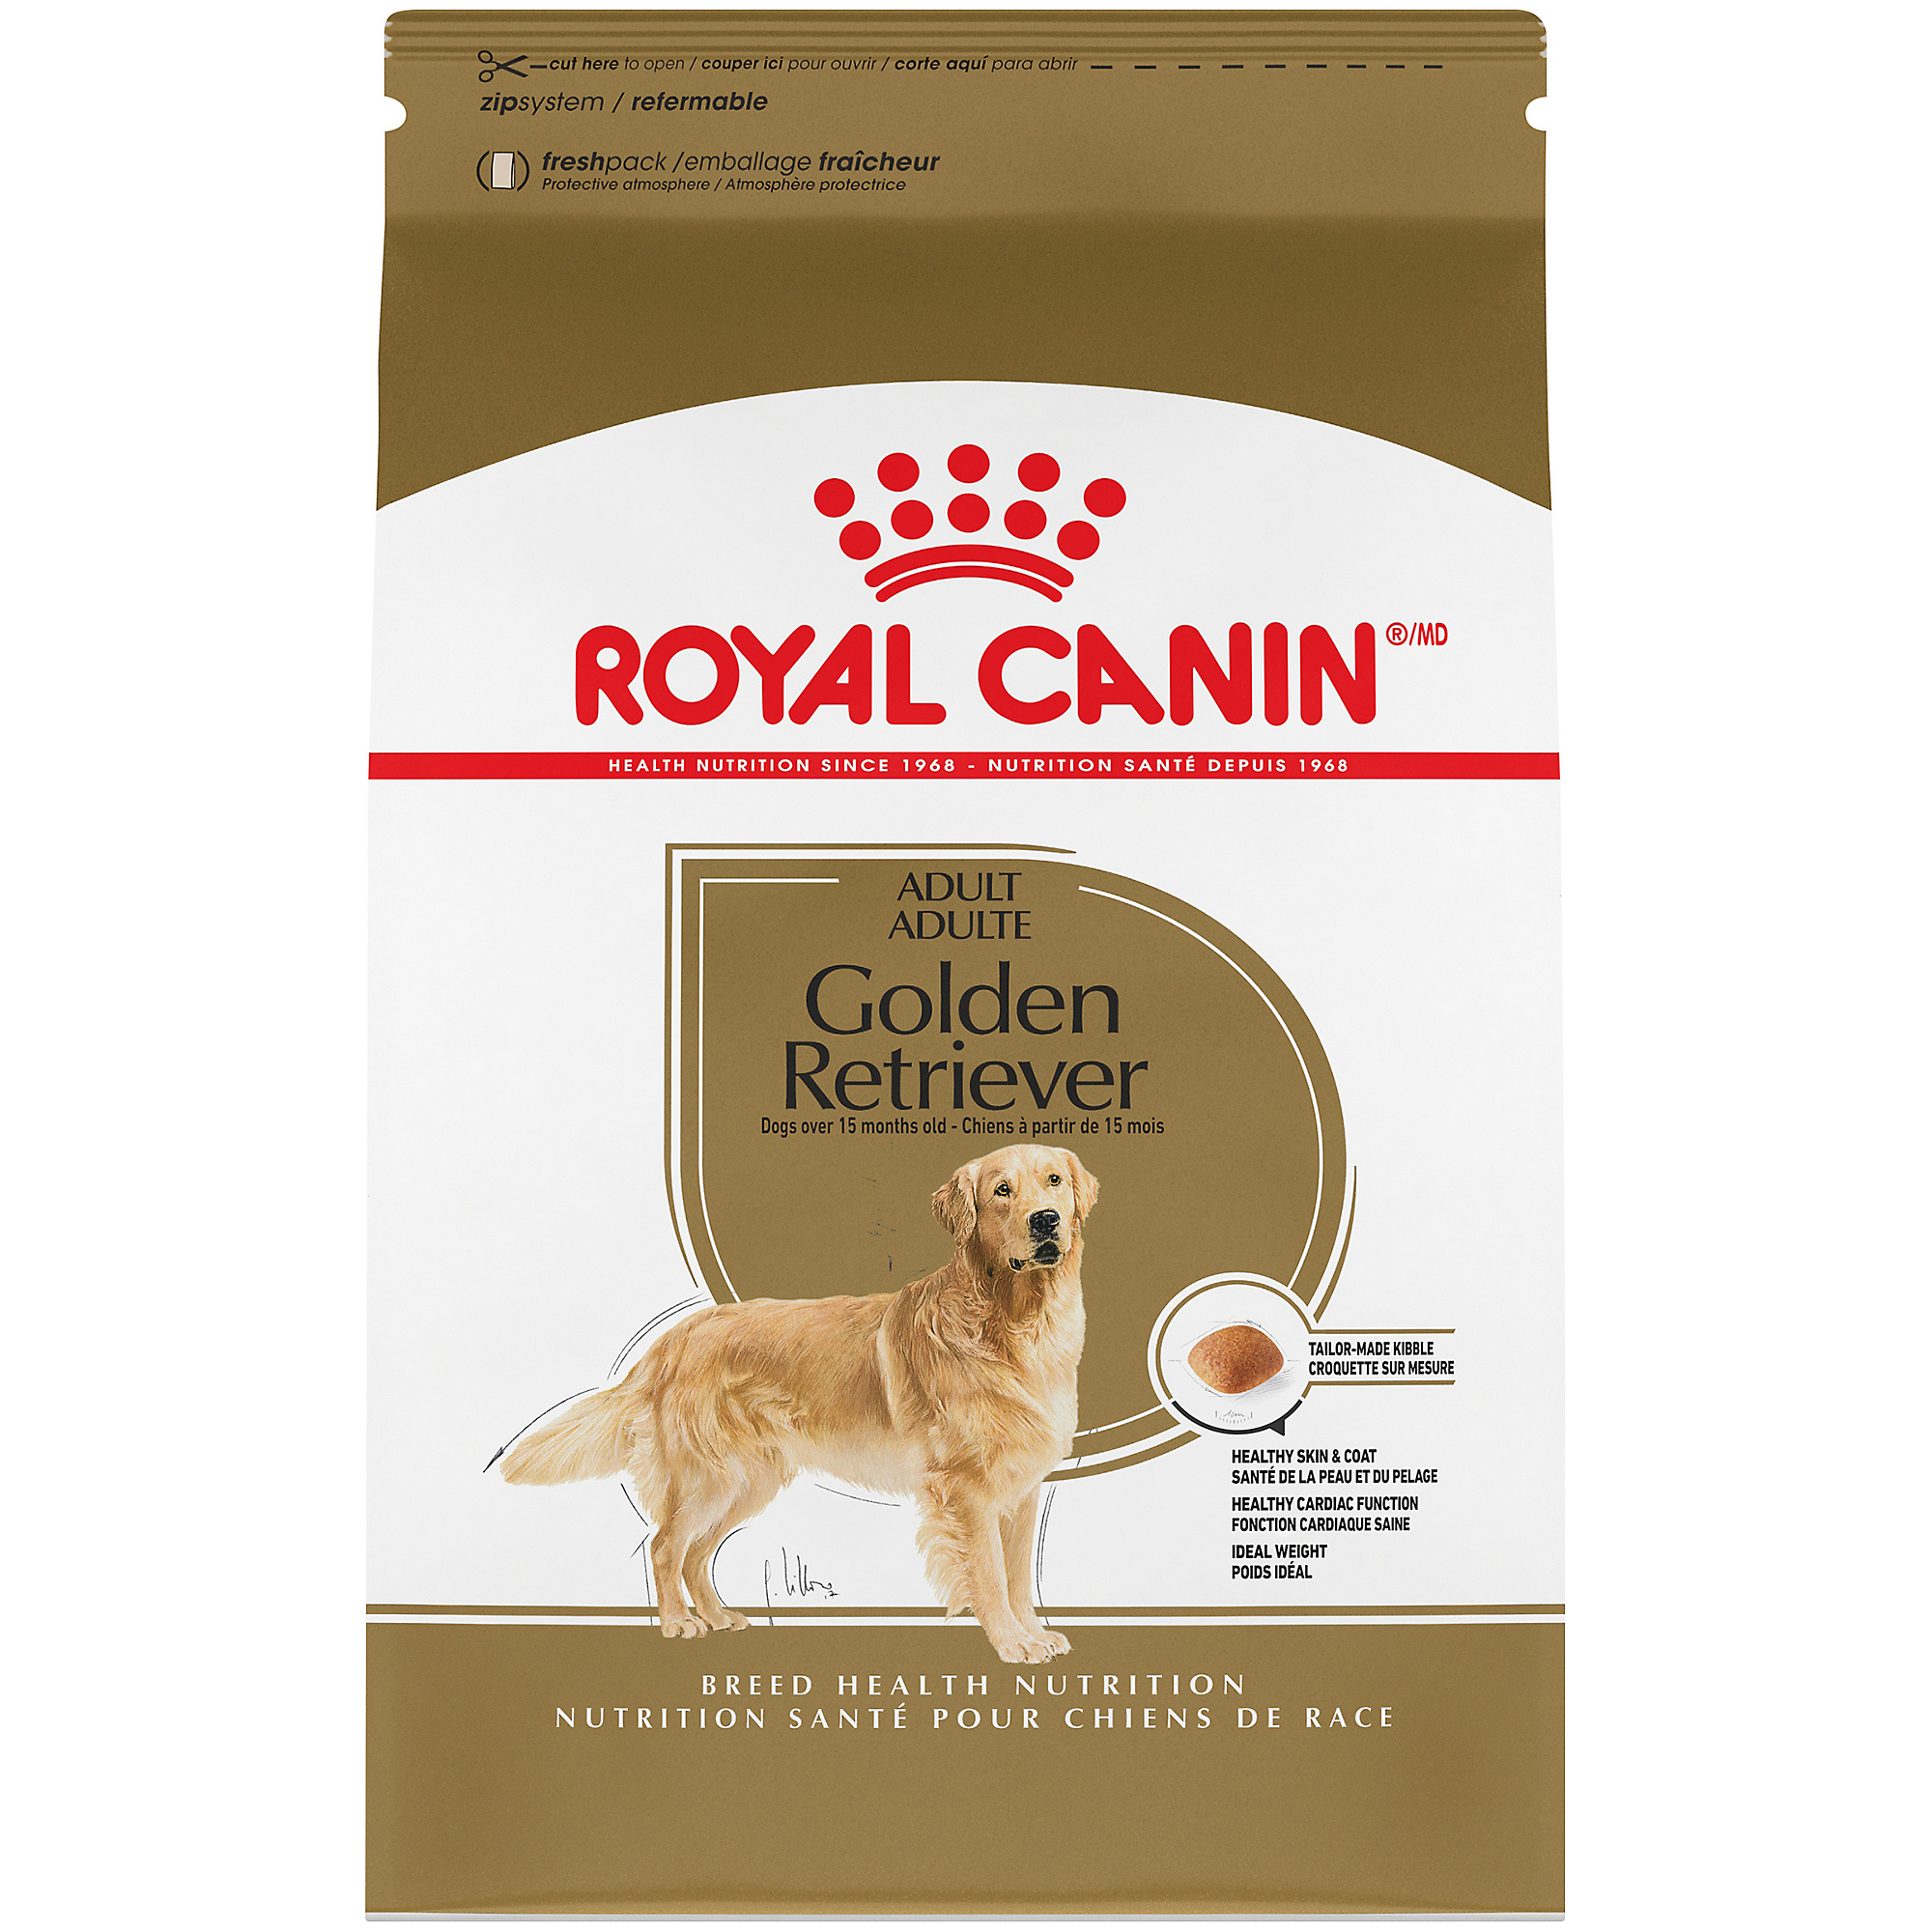 Royal Canin Breed Health Nutrition Golden Retriever Adult Dry Dog Food Image